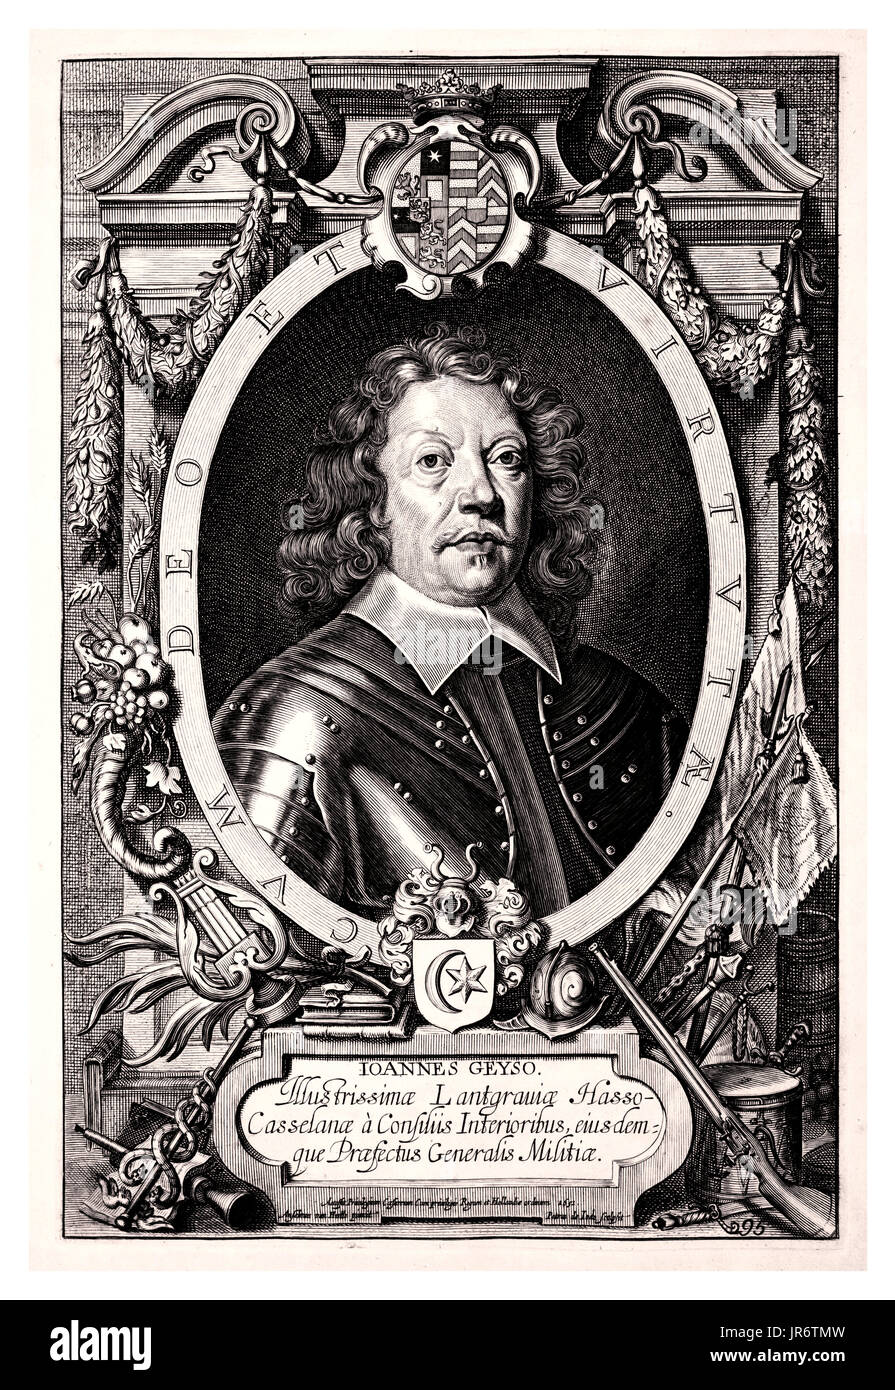 Johann von Geyso (1593 – 1661) a German nobleman and General-Lieutenant, who fought during the course of the Thirty Years' War. After studying in a Dutch military academy, Geyso fought as a mercenary in the armies of Sweden, Bohemia, Denmark and the German Protestant Union. In 1628, having gained significant experience in warfare he returned to his native Hesse-Kassel which he served until the end of the Thirty Years' War, reaching the rank of commander in chief of the Langraviate's forces and becoming ennobled. - Stock Image